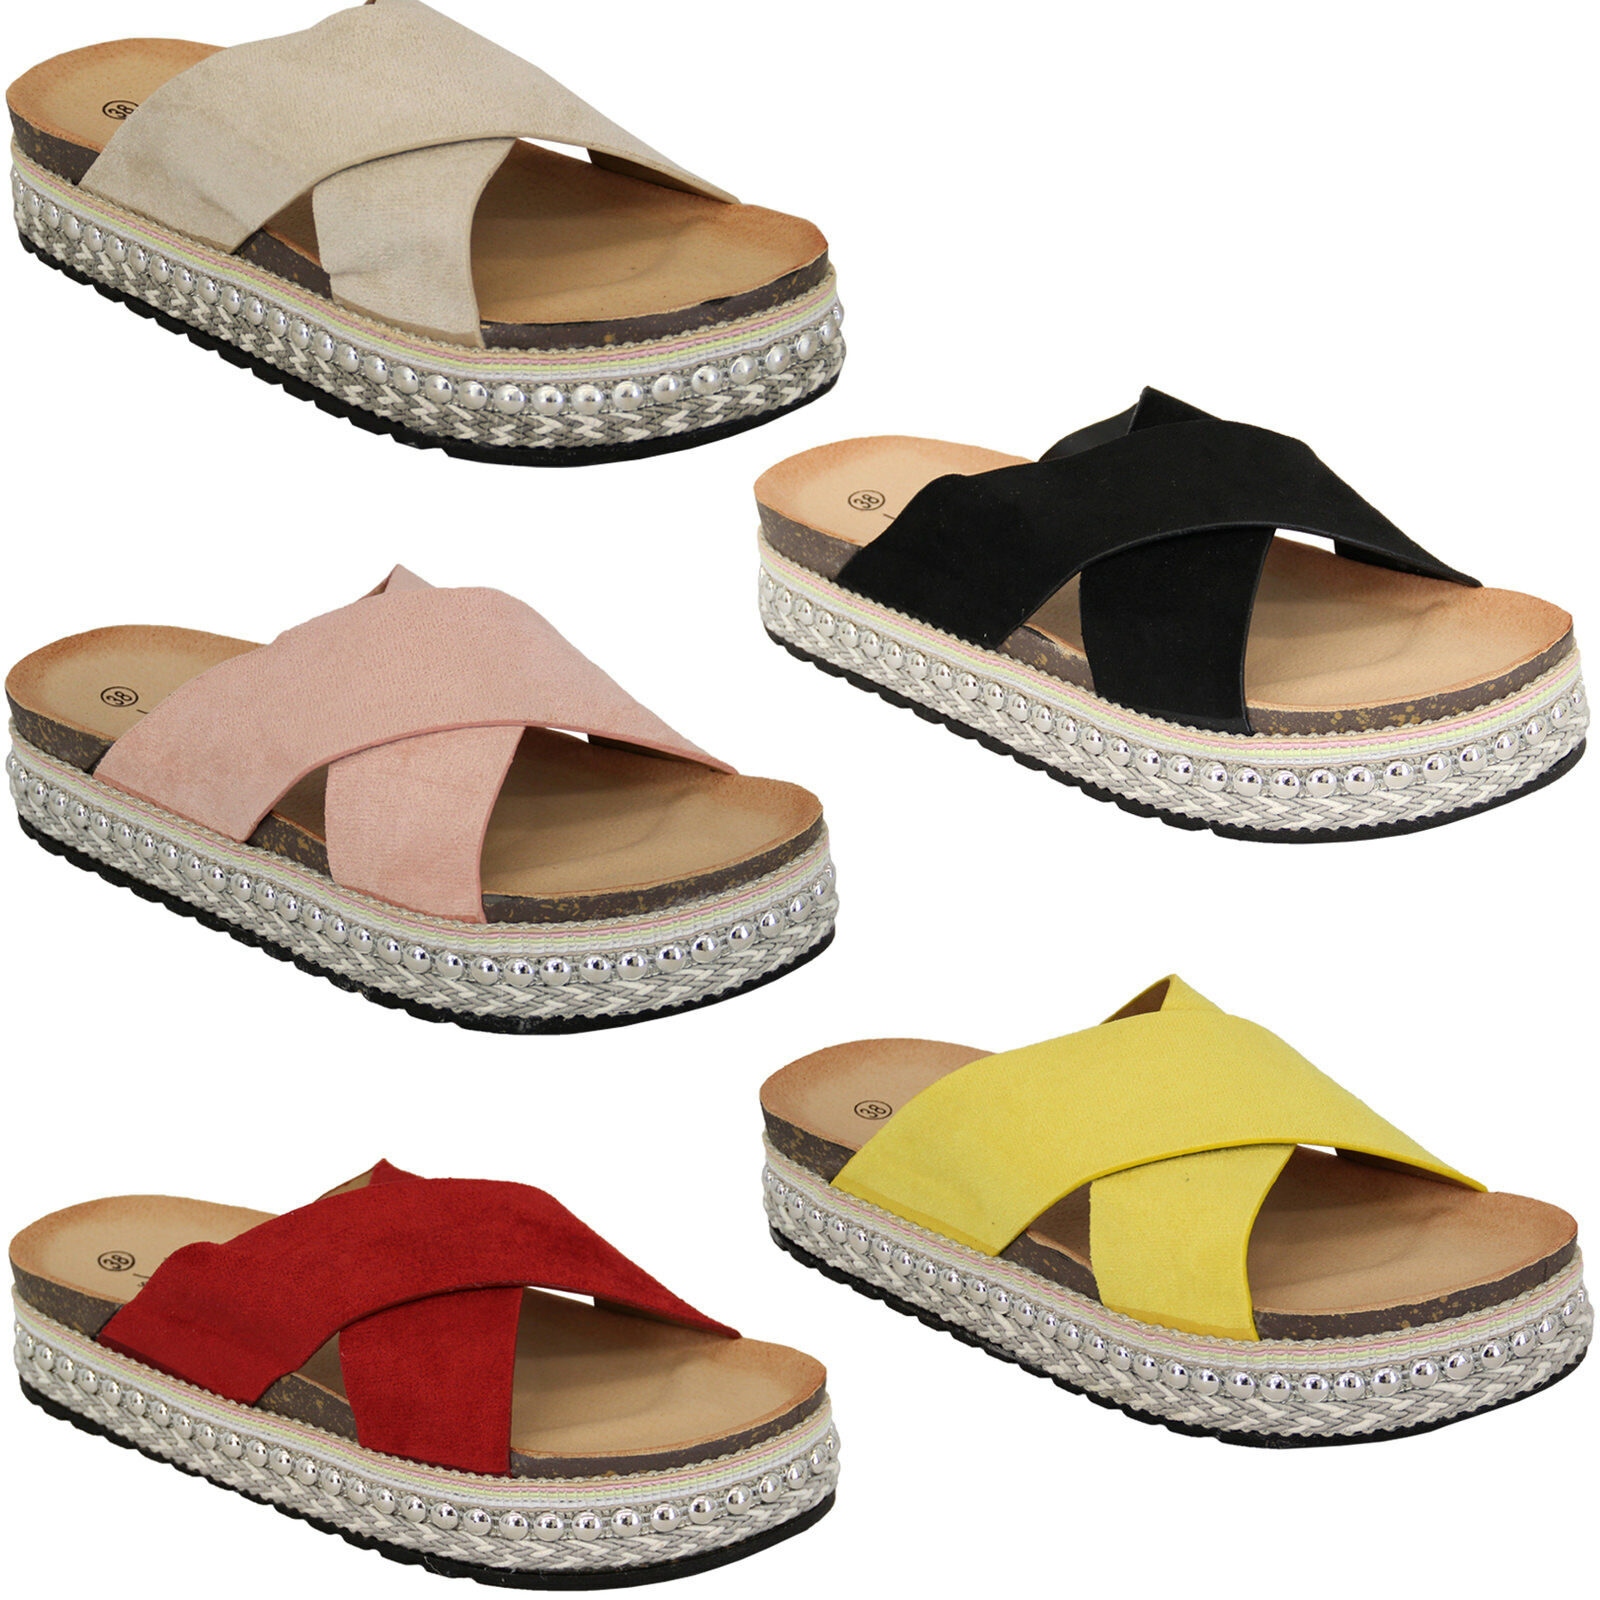 Ladies Suede Look Platform Rope Sandals Womens Espadrilles Wedge Studs Shoes